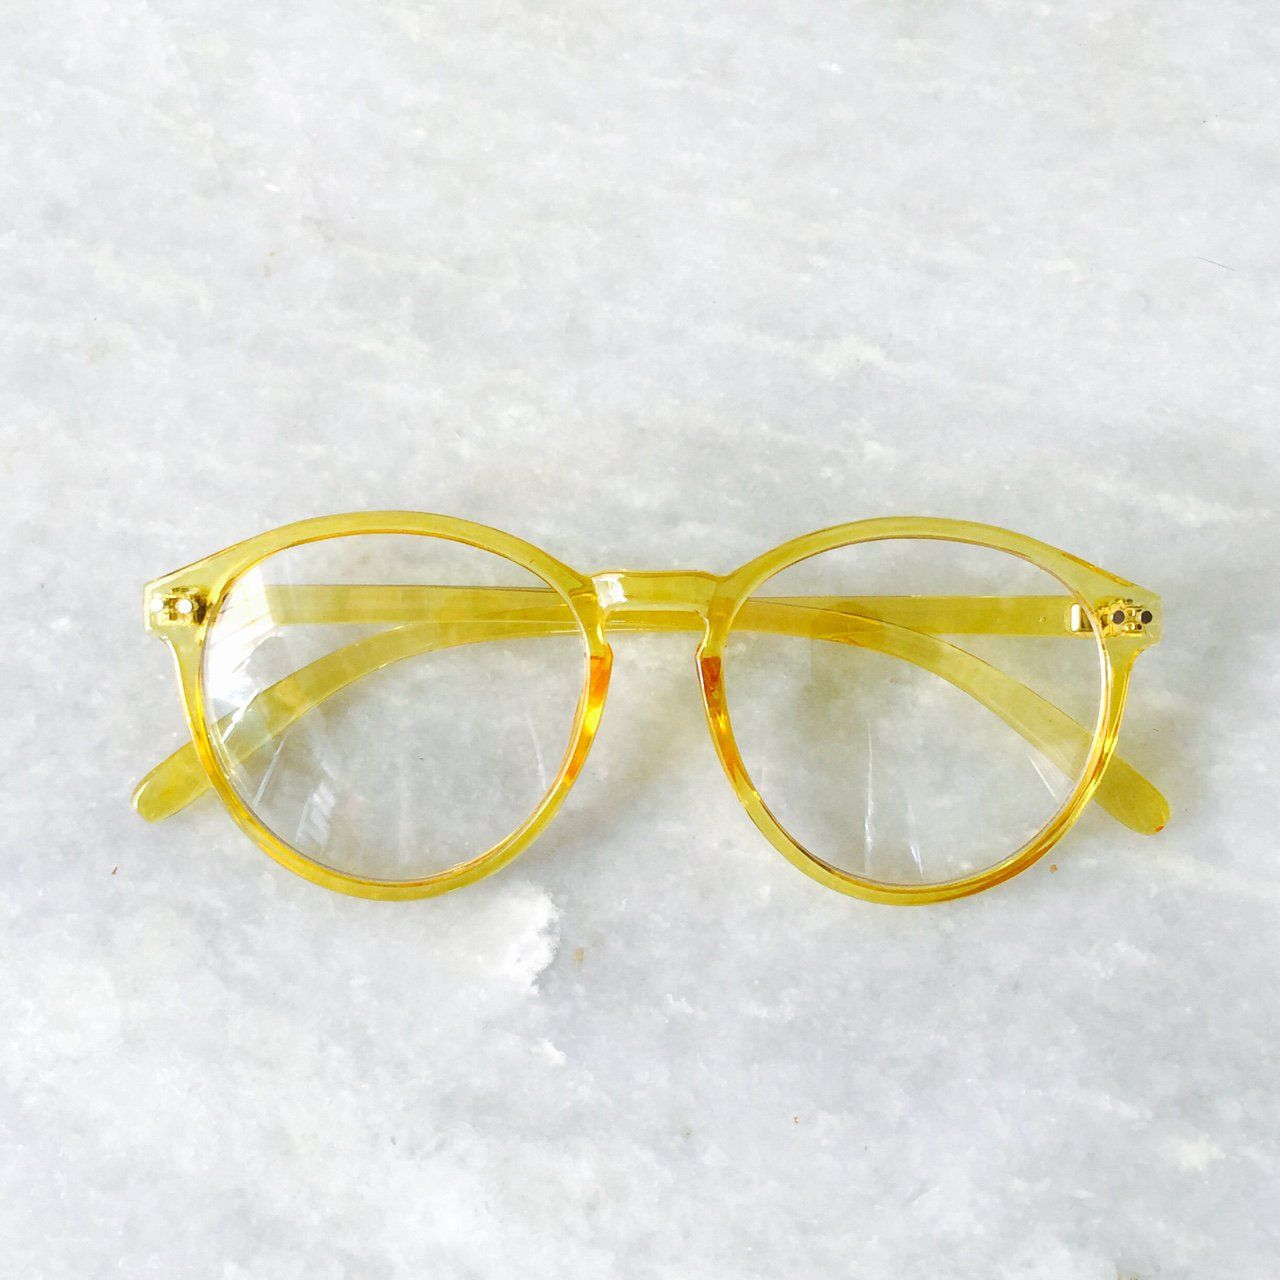 3f8a675a1a Retro Yellow Pantos Frame Clear Lens Glasses ⌛ Yellow Frame • Pantos Style  • Replaceable Lens • Retro Fit • Denim shorts • Basic Tee • Vans Shoes •  SENT ...